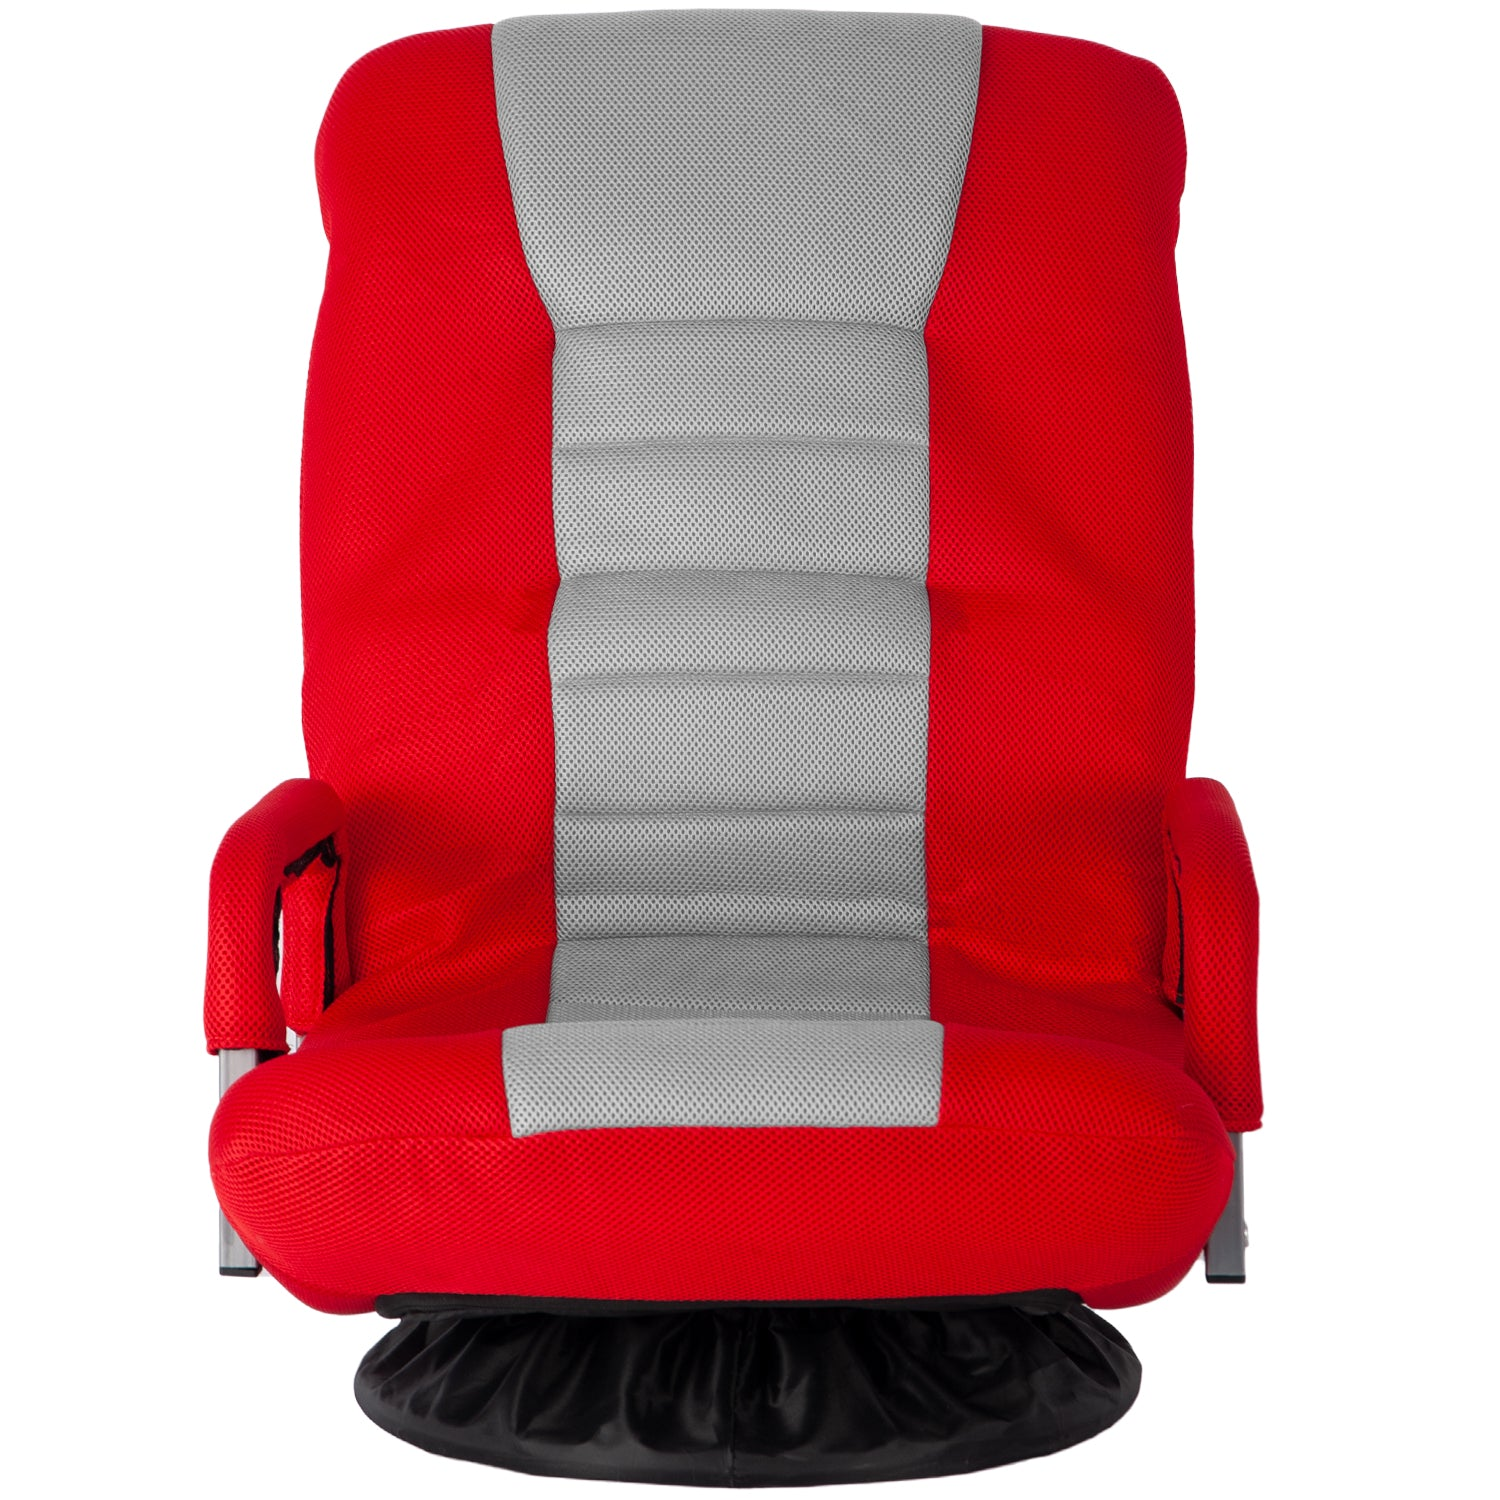 Firebrick Swivel Video Rocker Gaming Chair Adjustable 7-Position Floor Chair Folding Sofa Lounger BH037464